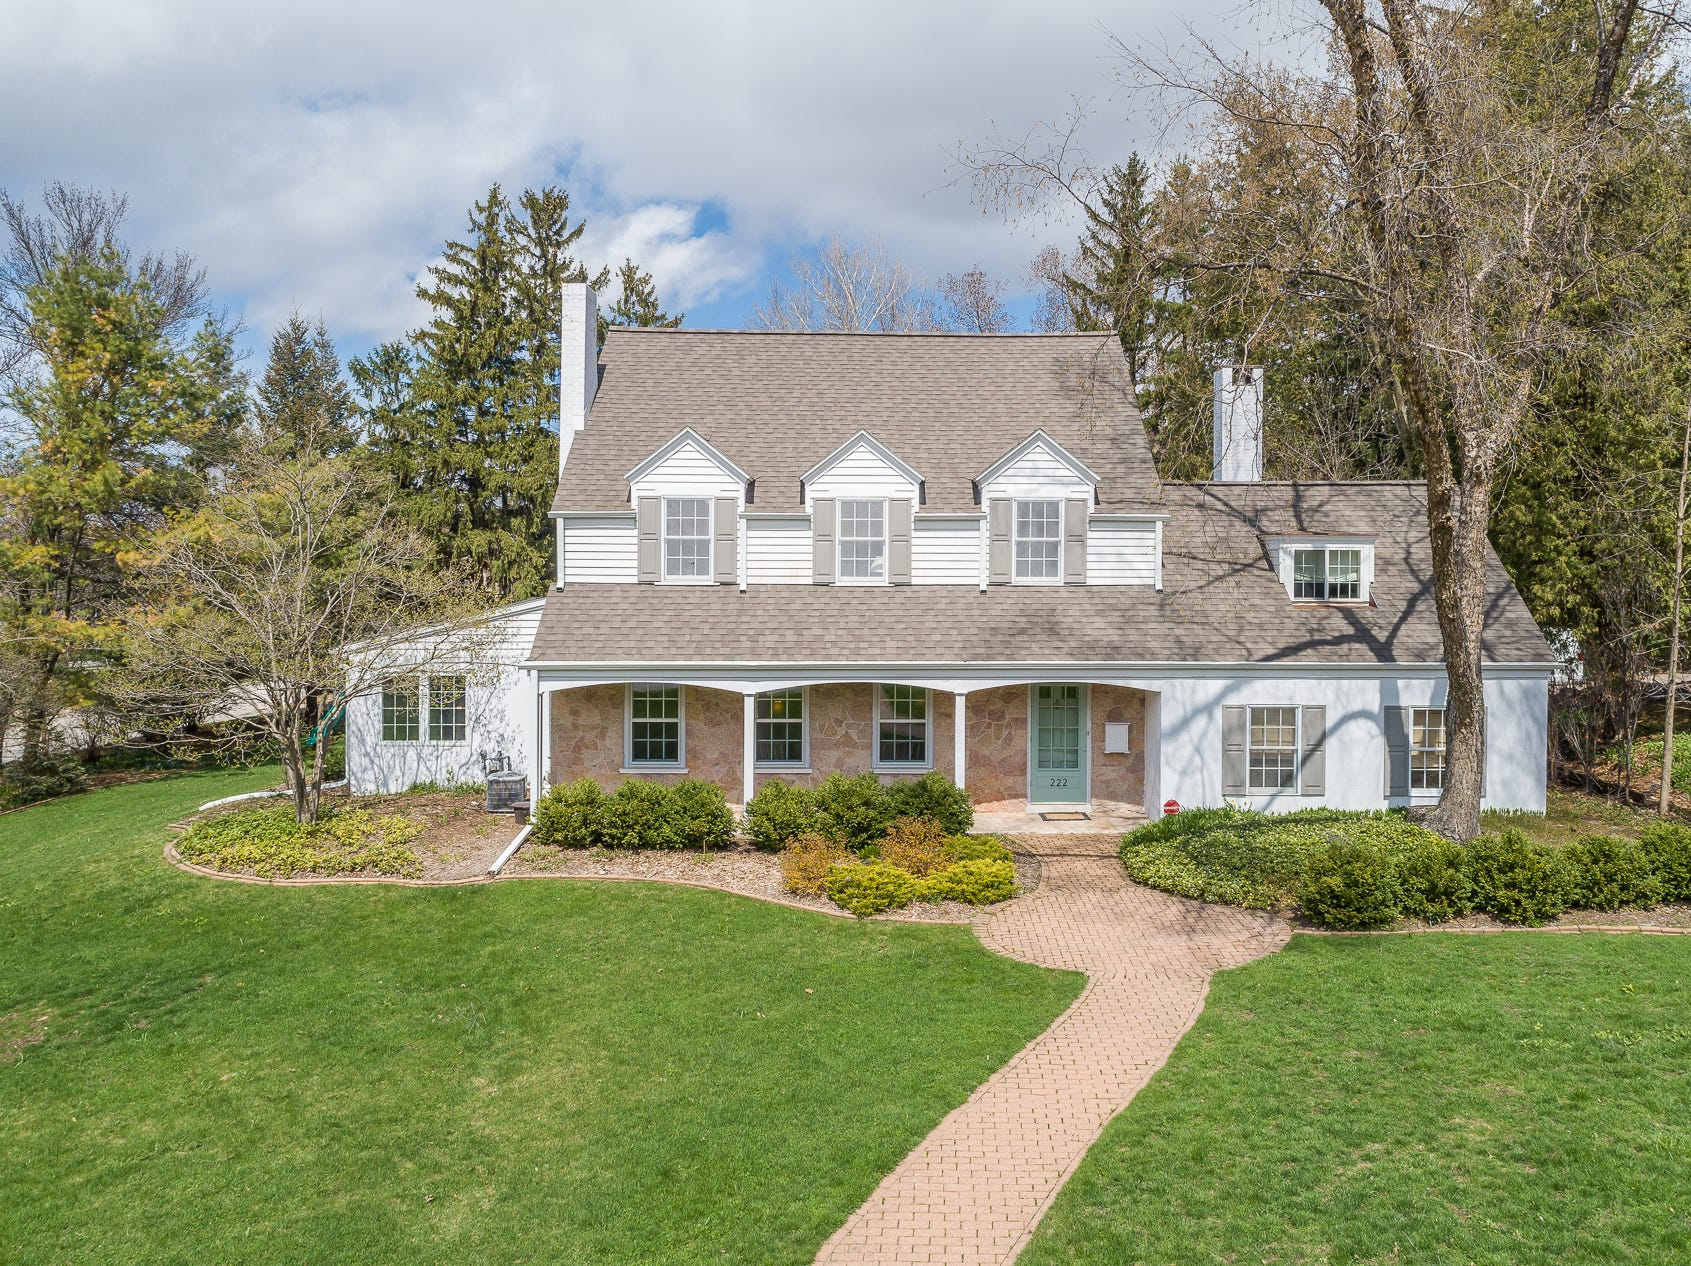 Green Bay Packers coach Vince Lombardi briefly lived in the house at 222 W. Mission Road, Allouez. It is for sale.